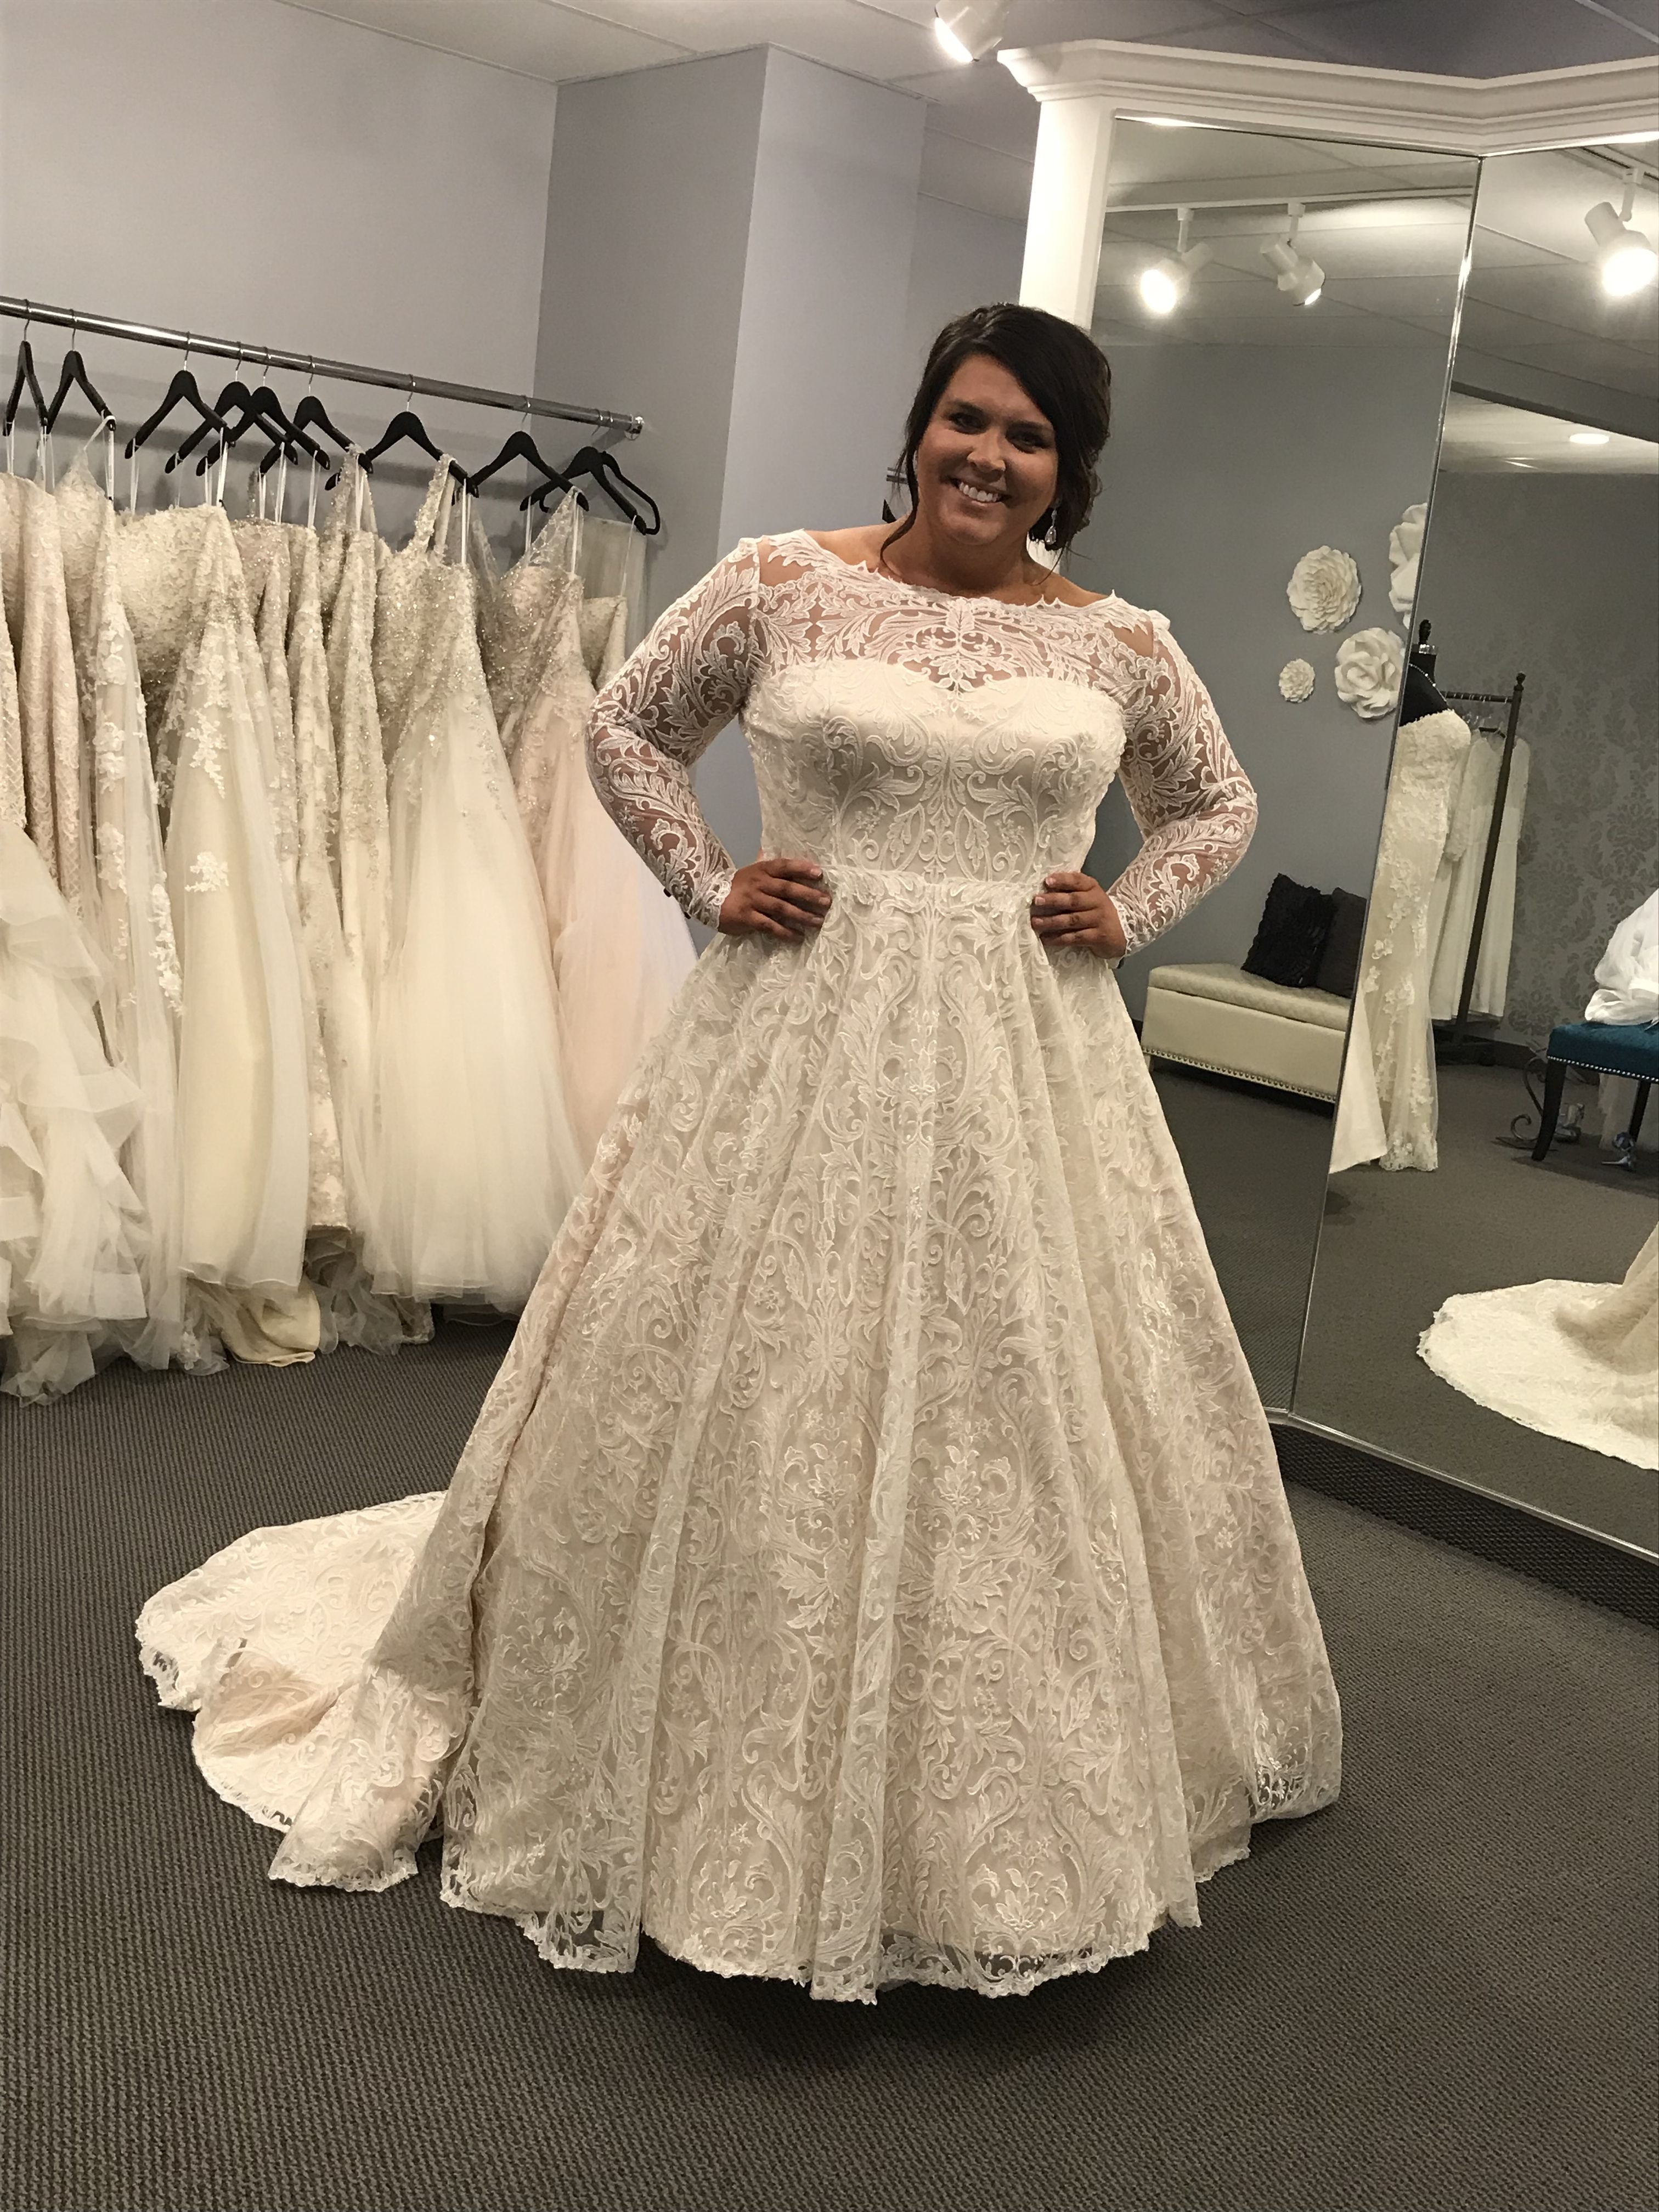 Wedding Dress With Sleeves Curvy Bride Plus Size Bride Plus Size Wedding Plus Wedding Dresses Plus Size Wedding Dresses With Sleeves Plus Size Wedding Gowns [ 4032 x 3024 Pixel ]